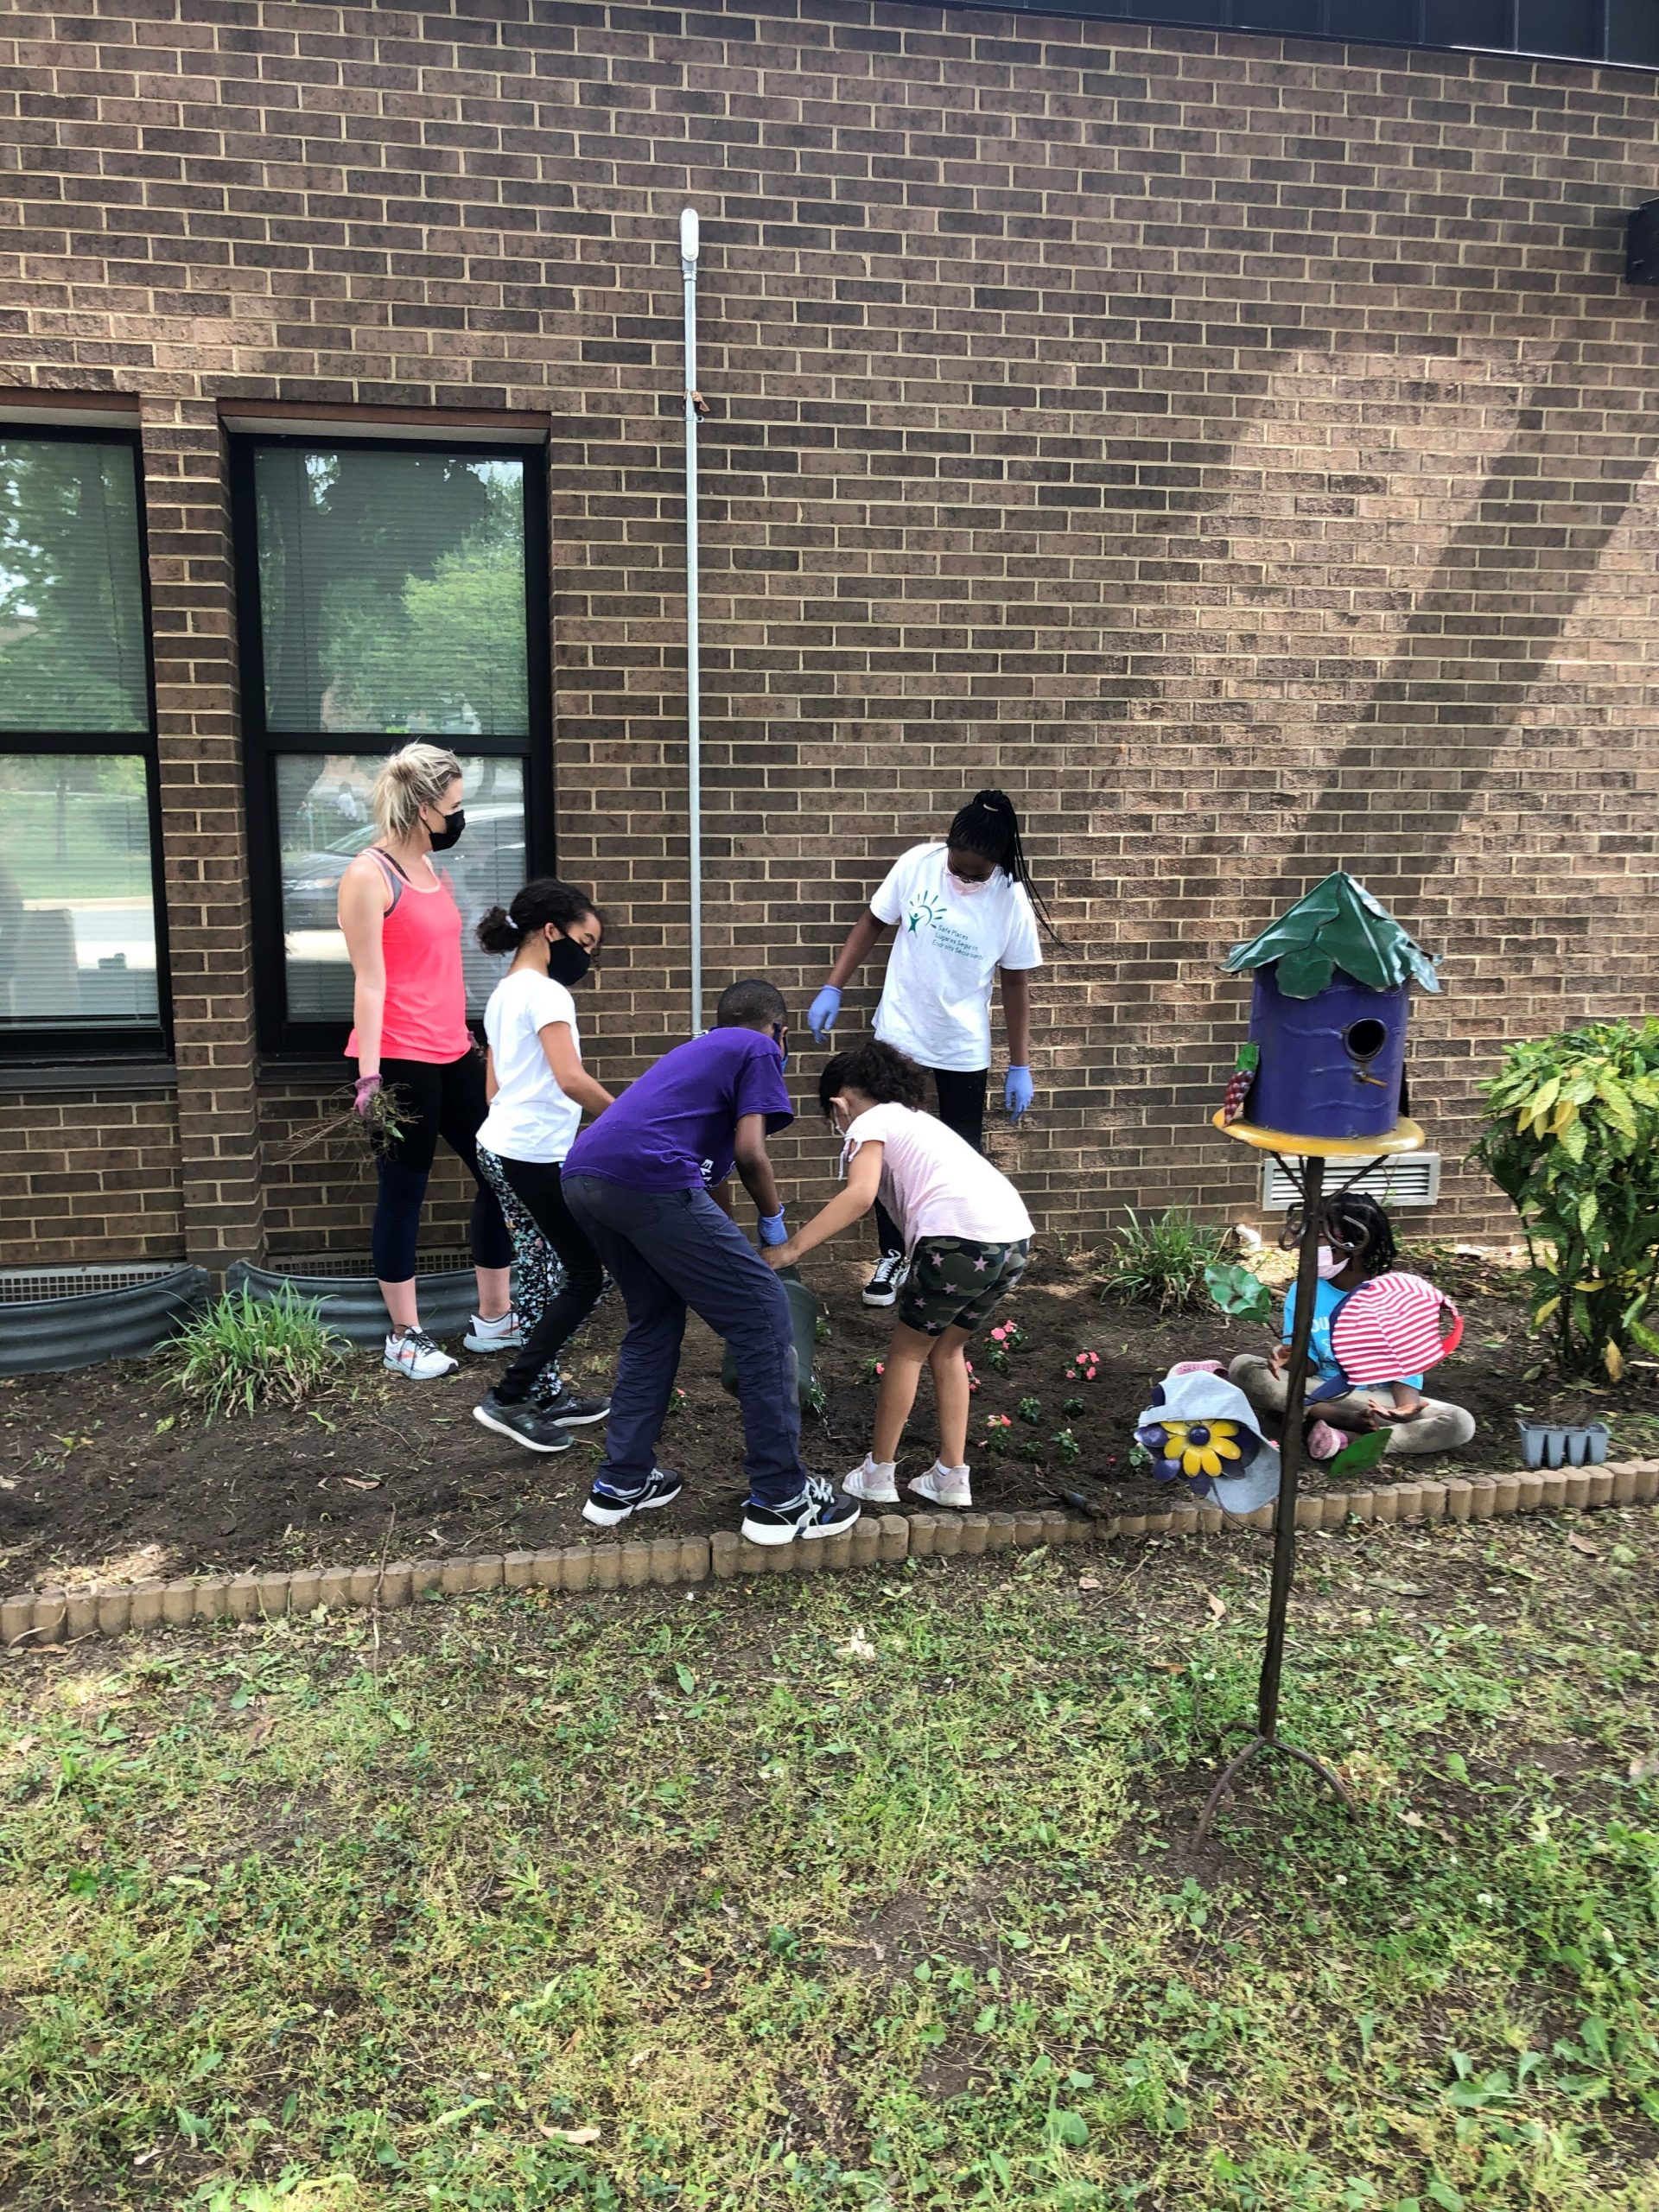 South Lake students, parents, and faculty collected trash and planted flowers as part of the School Beautification Project supported by Temple Beth Ami.